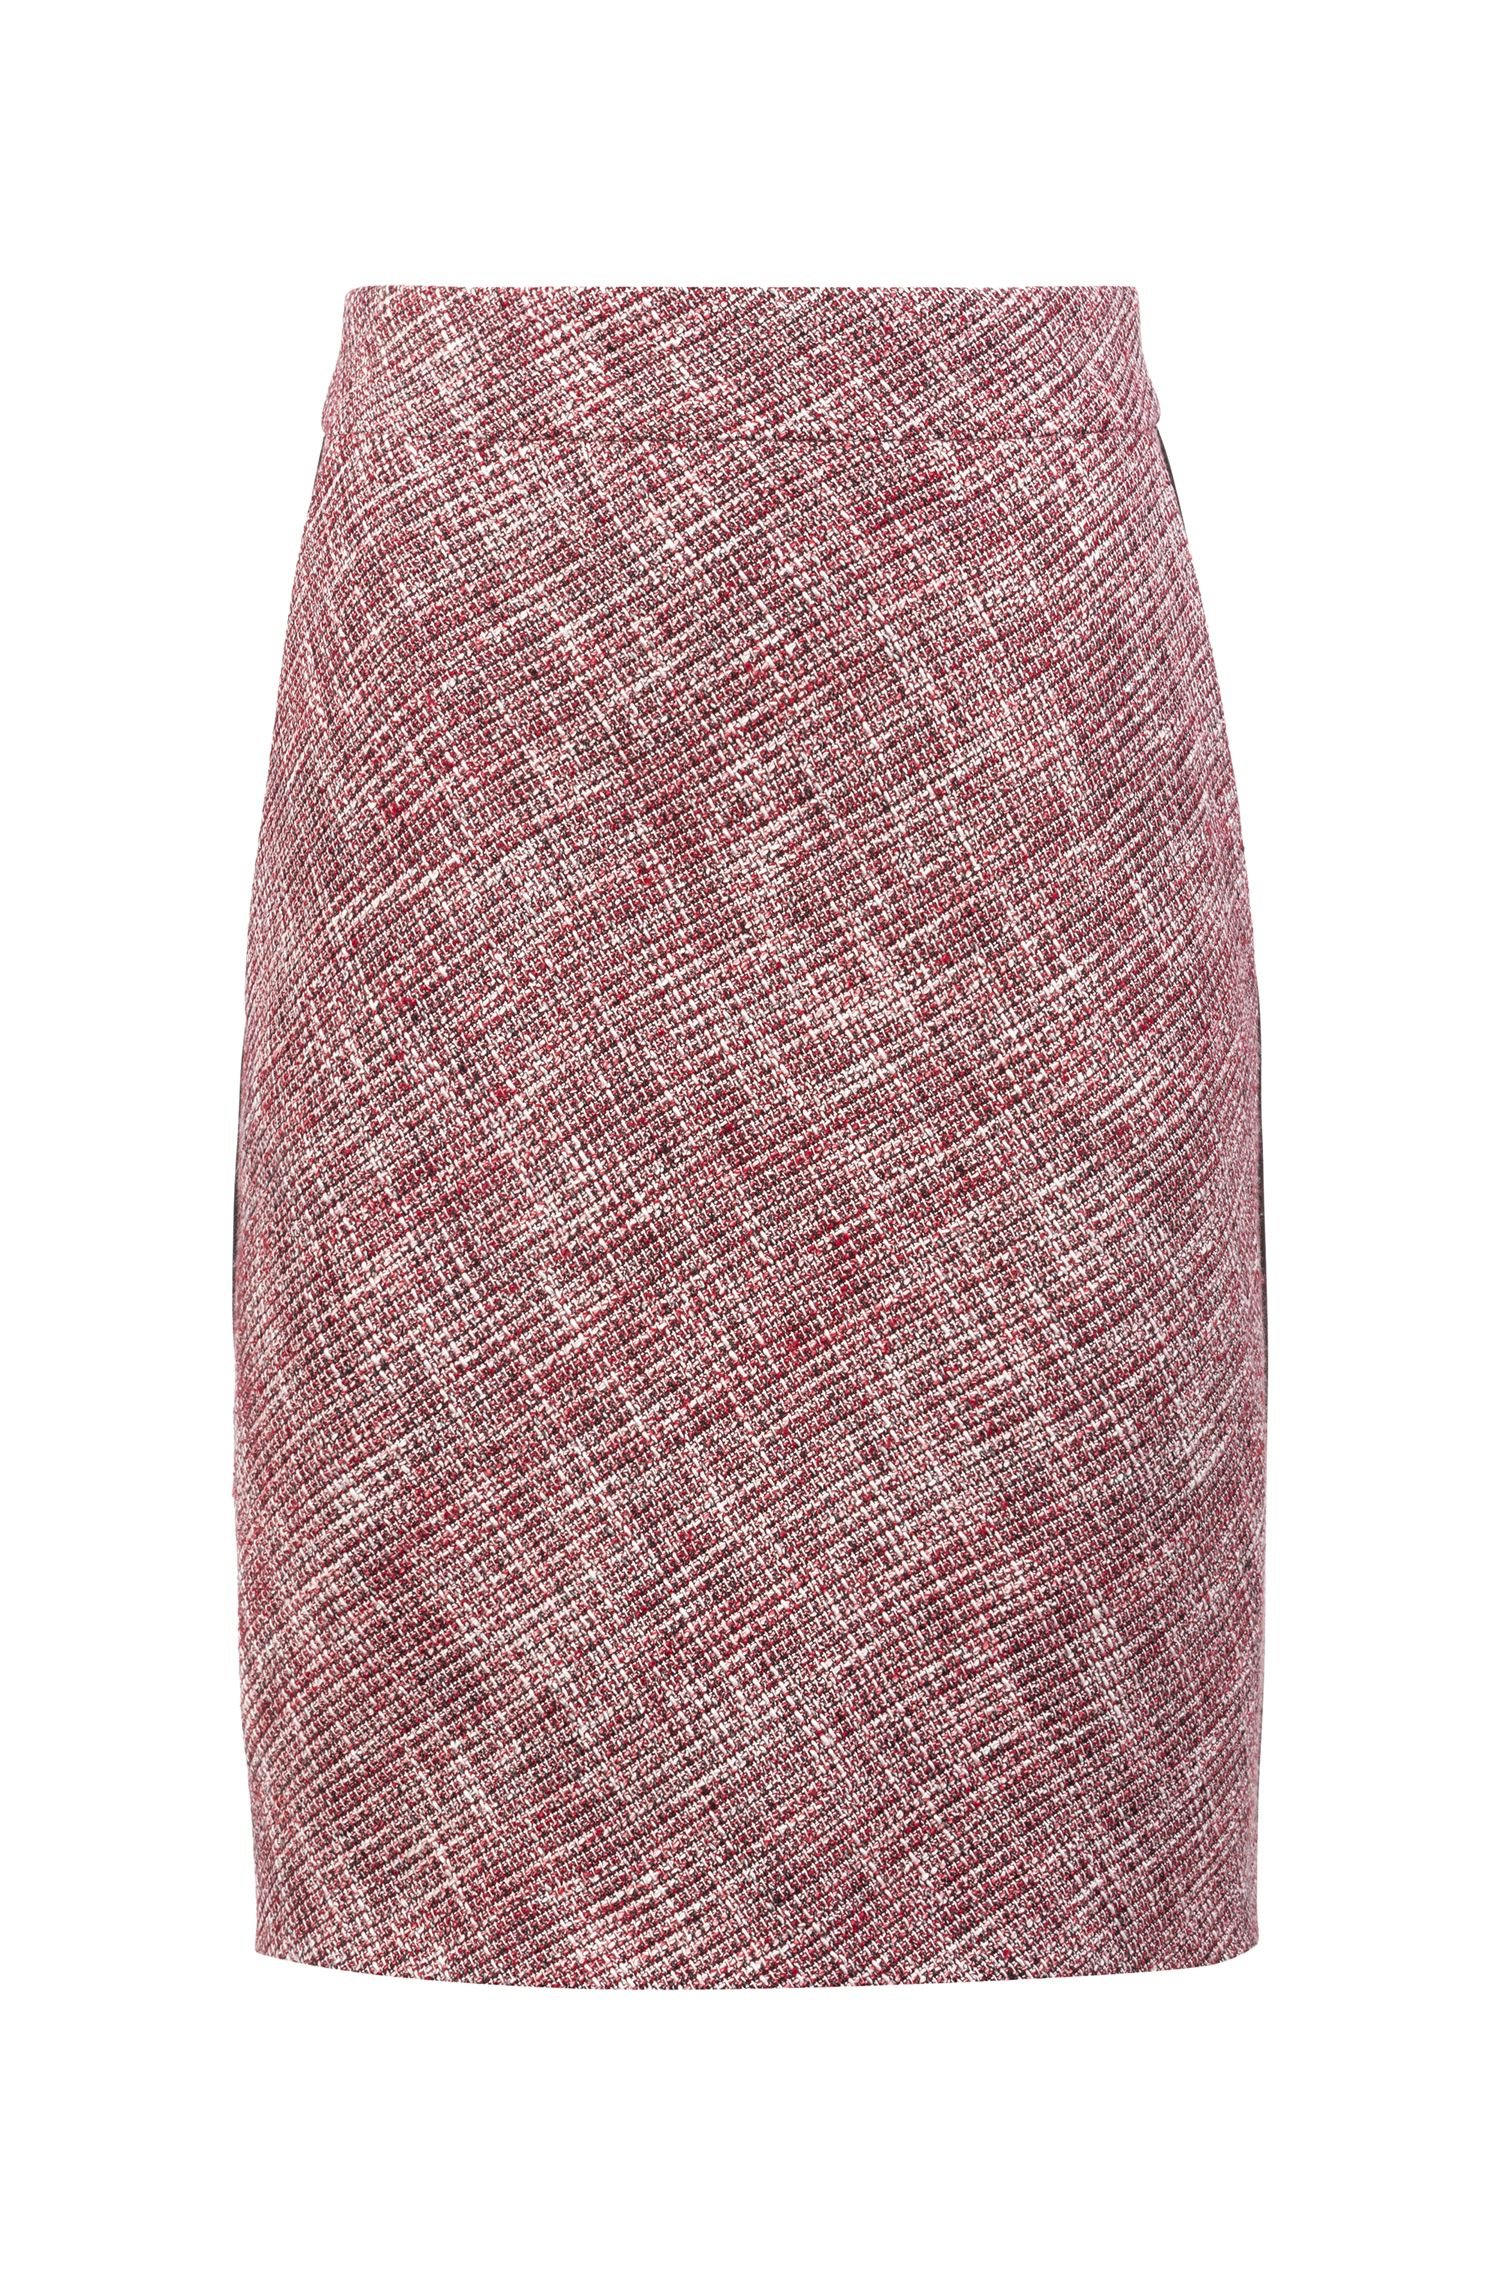 Tweed pencil skirt with faux-leather piping detail, Patterned